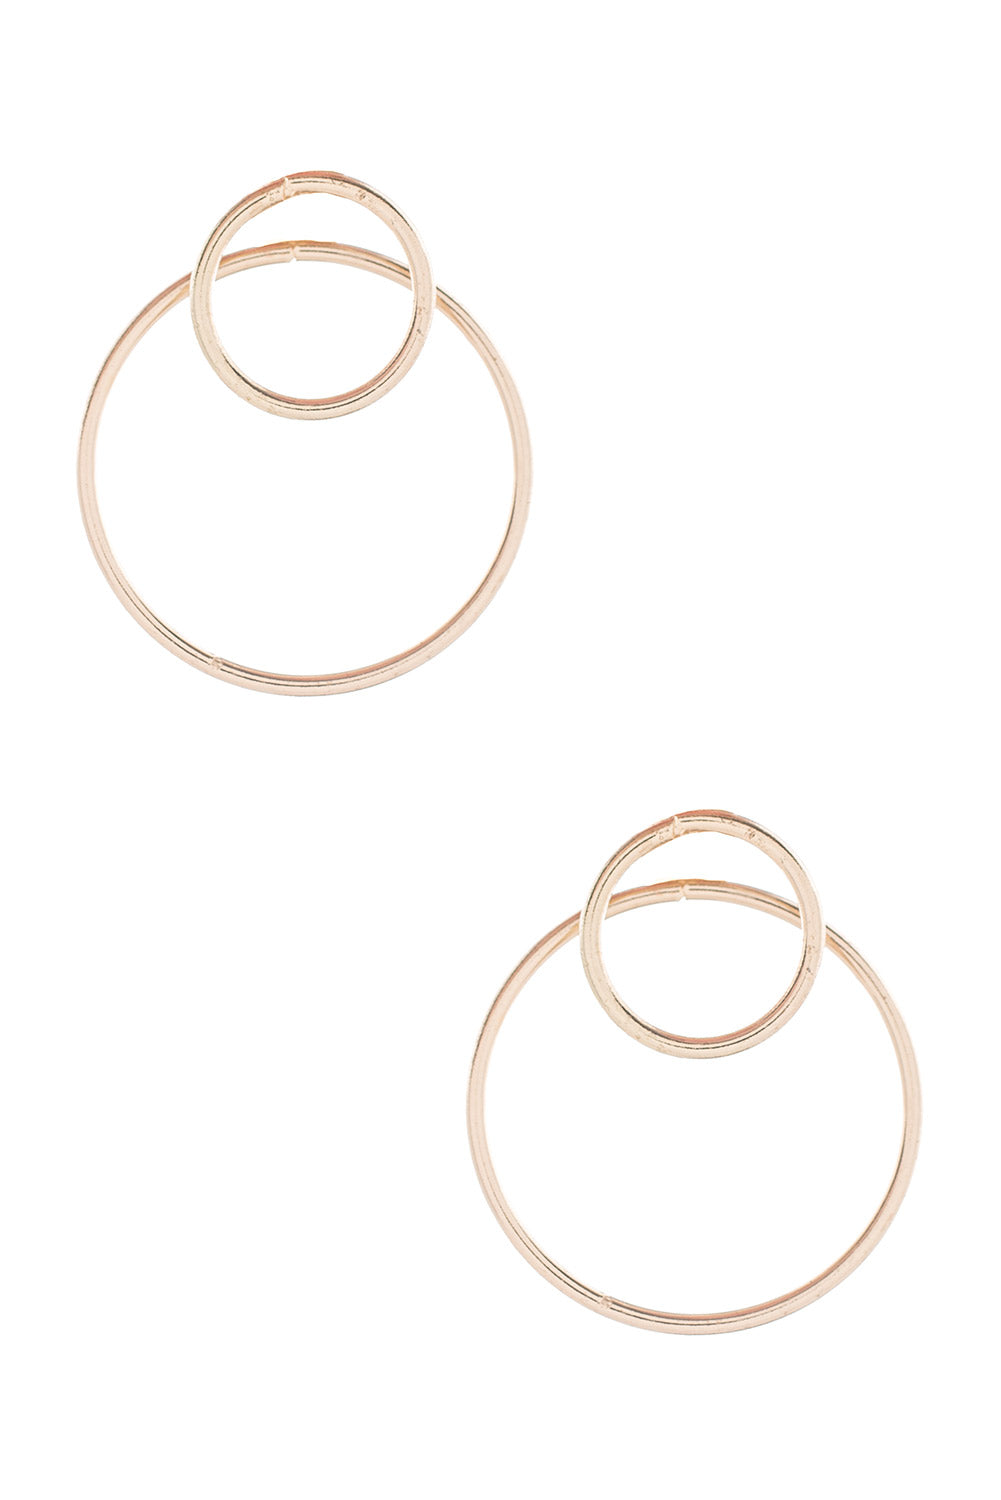 Type 1 Ring! Ring! Earrings